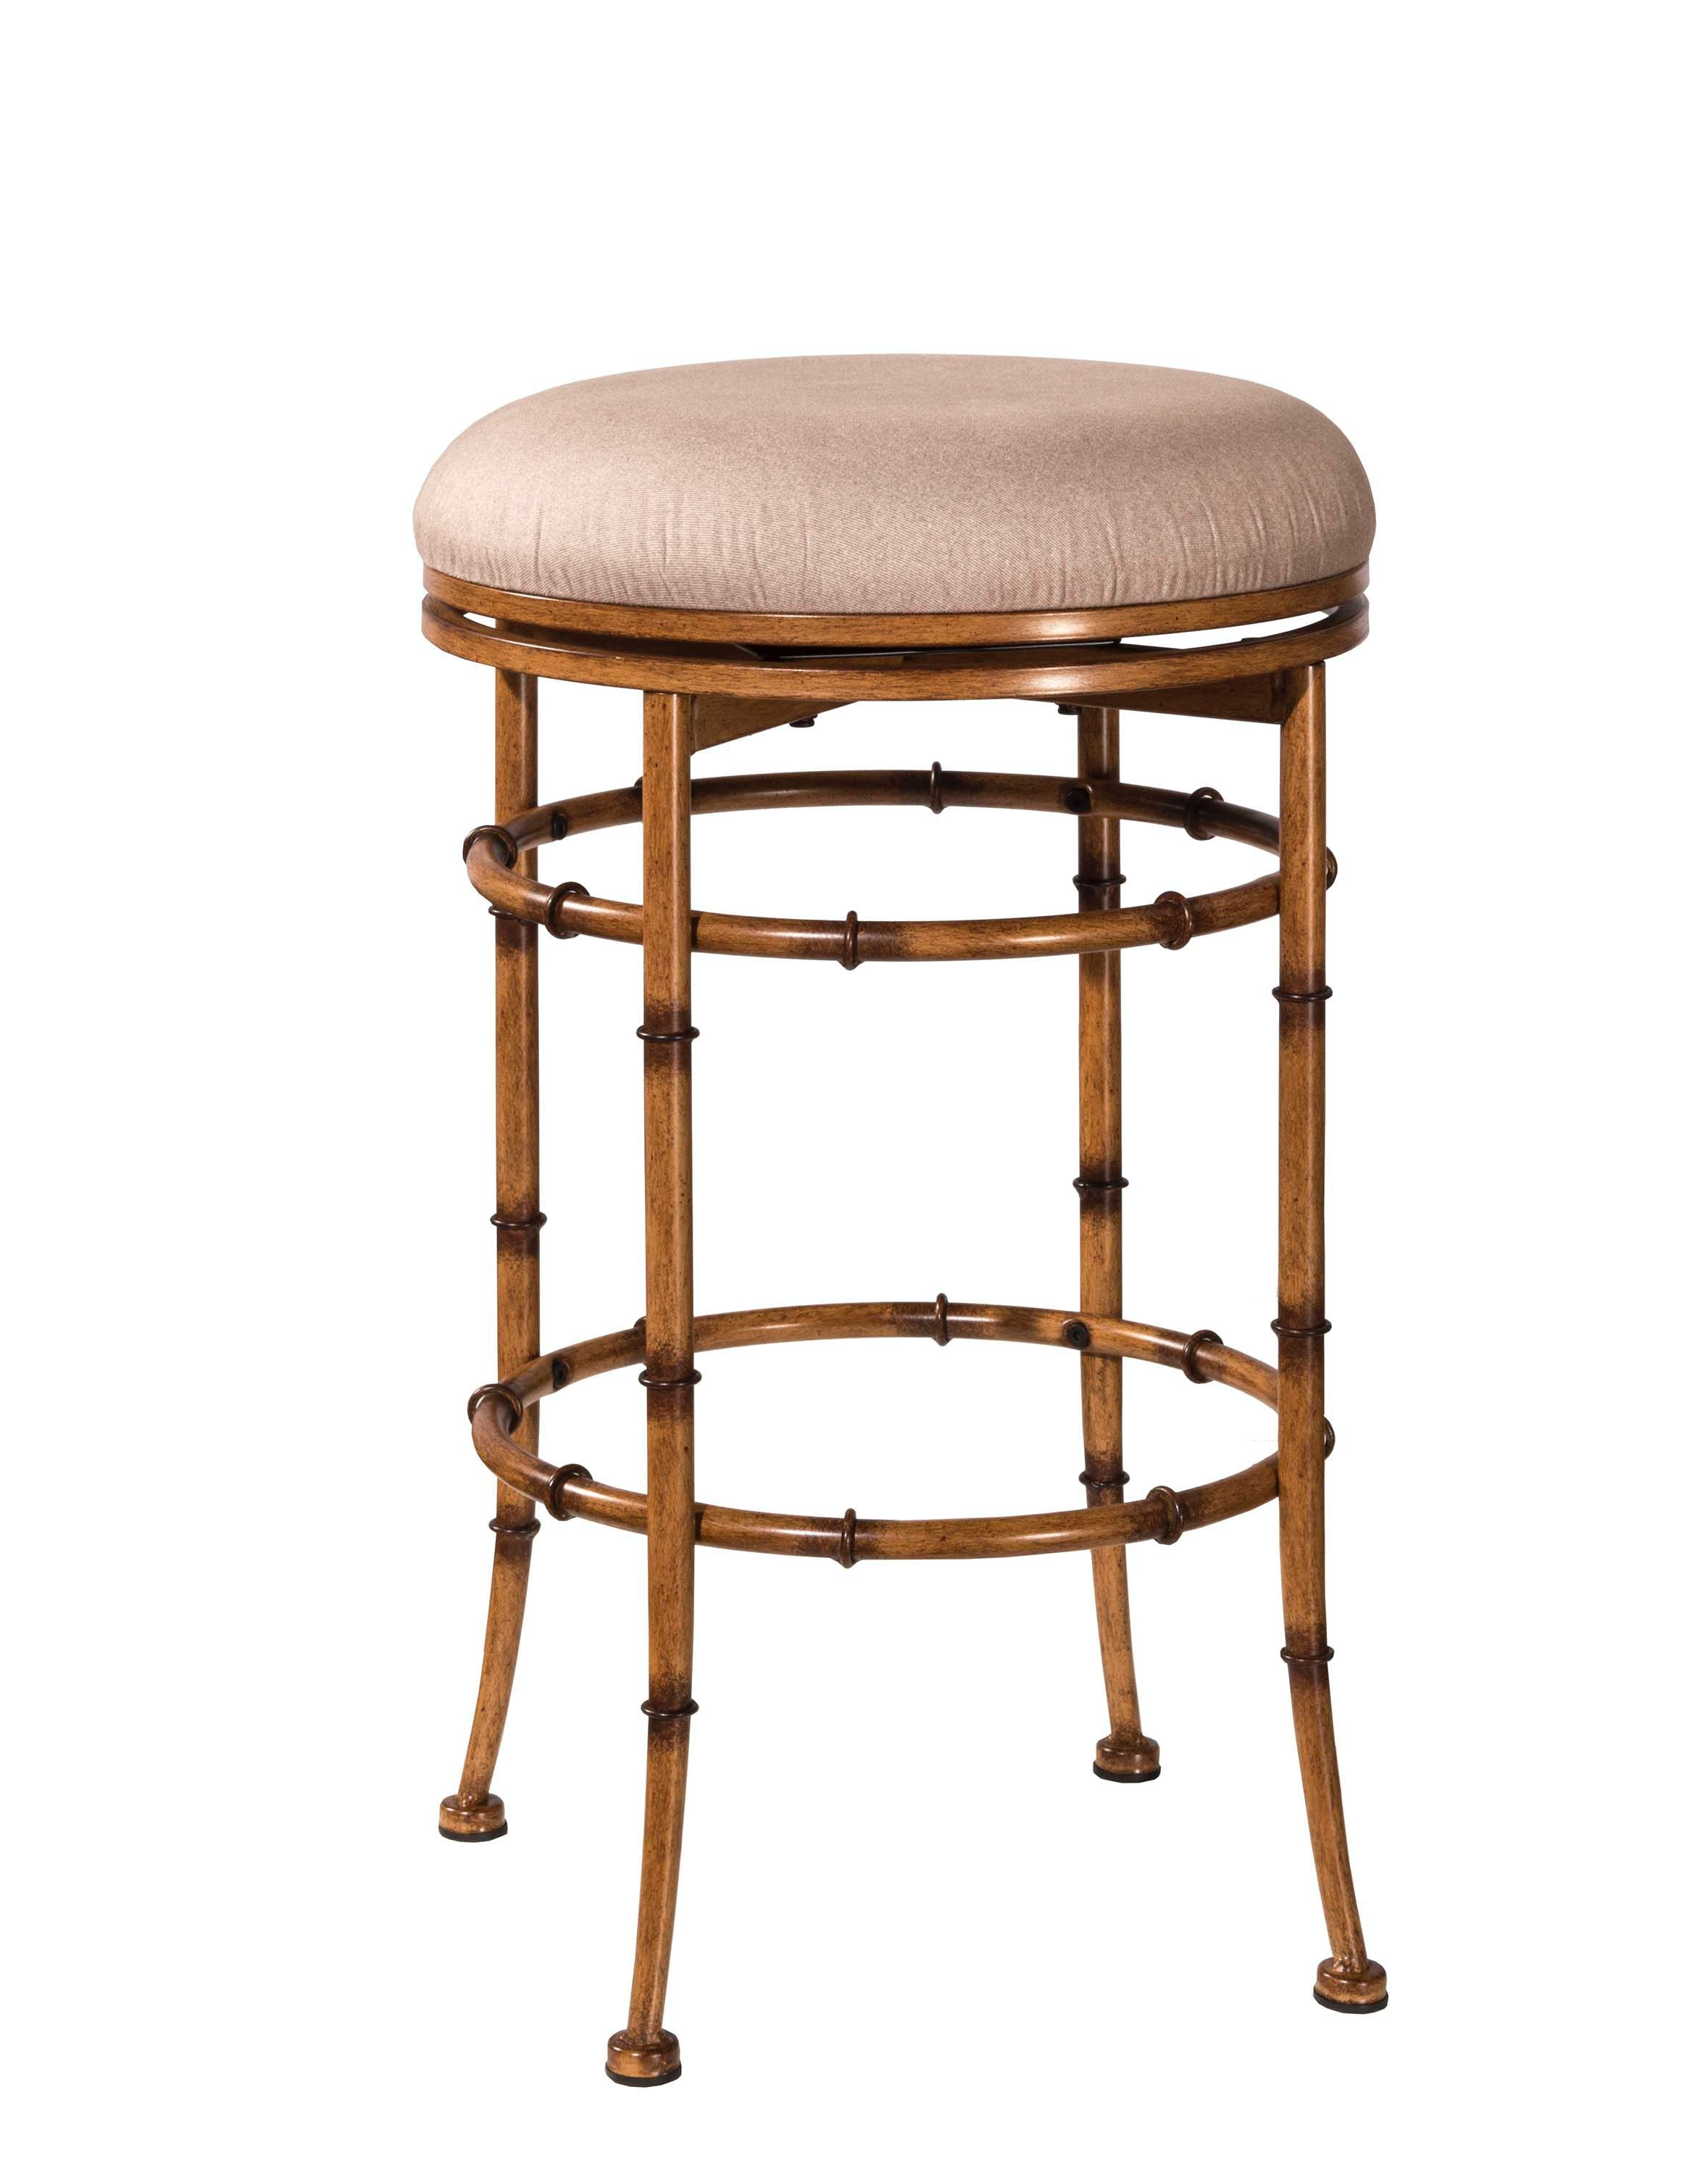 Hillsdale Furniture Bar And Game Room Reed Backless Swivel Counter Stool  103756 111472 At Naturwood Home Furnishings